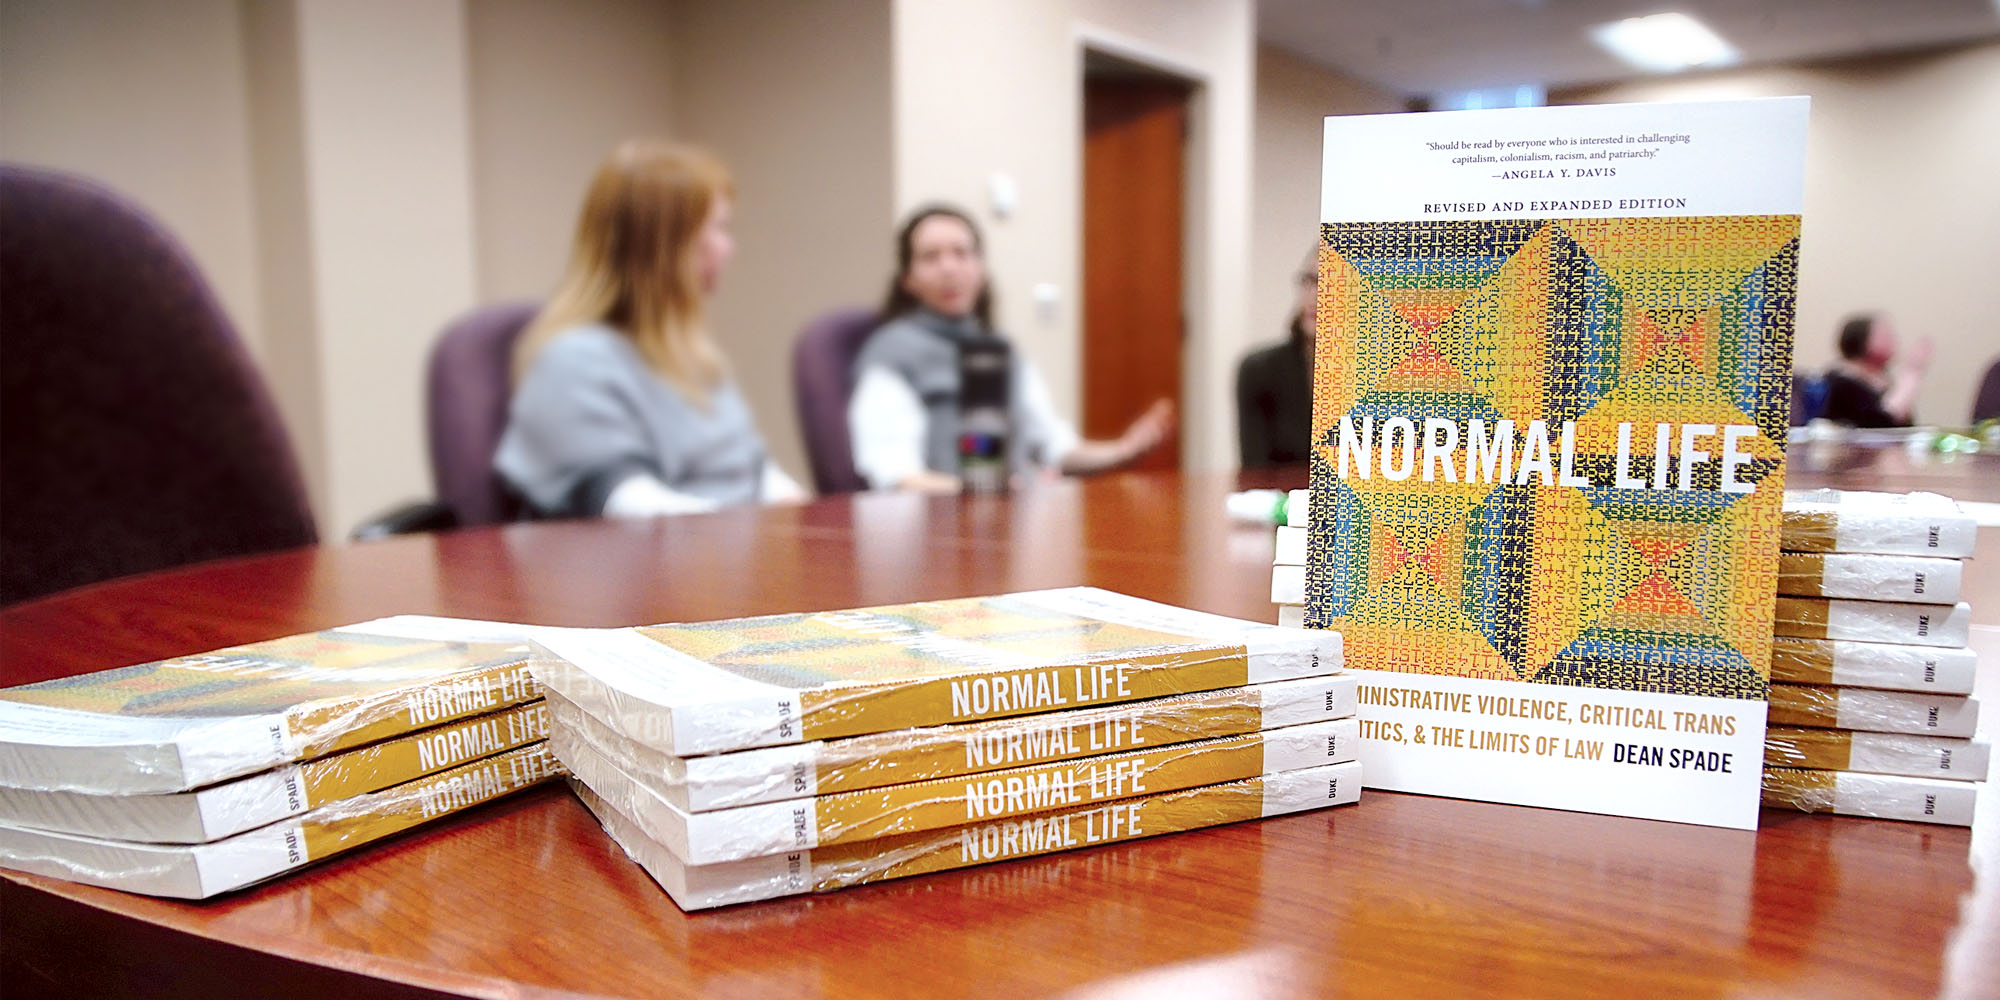 Dean Spade's Normal Life (2015) is the focus of the Diversity Reading Group